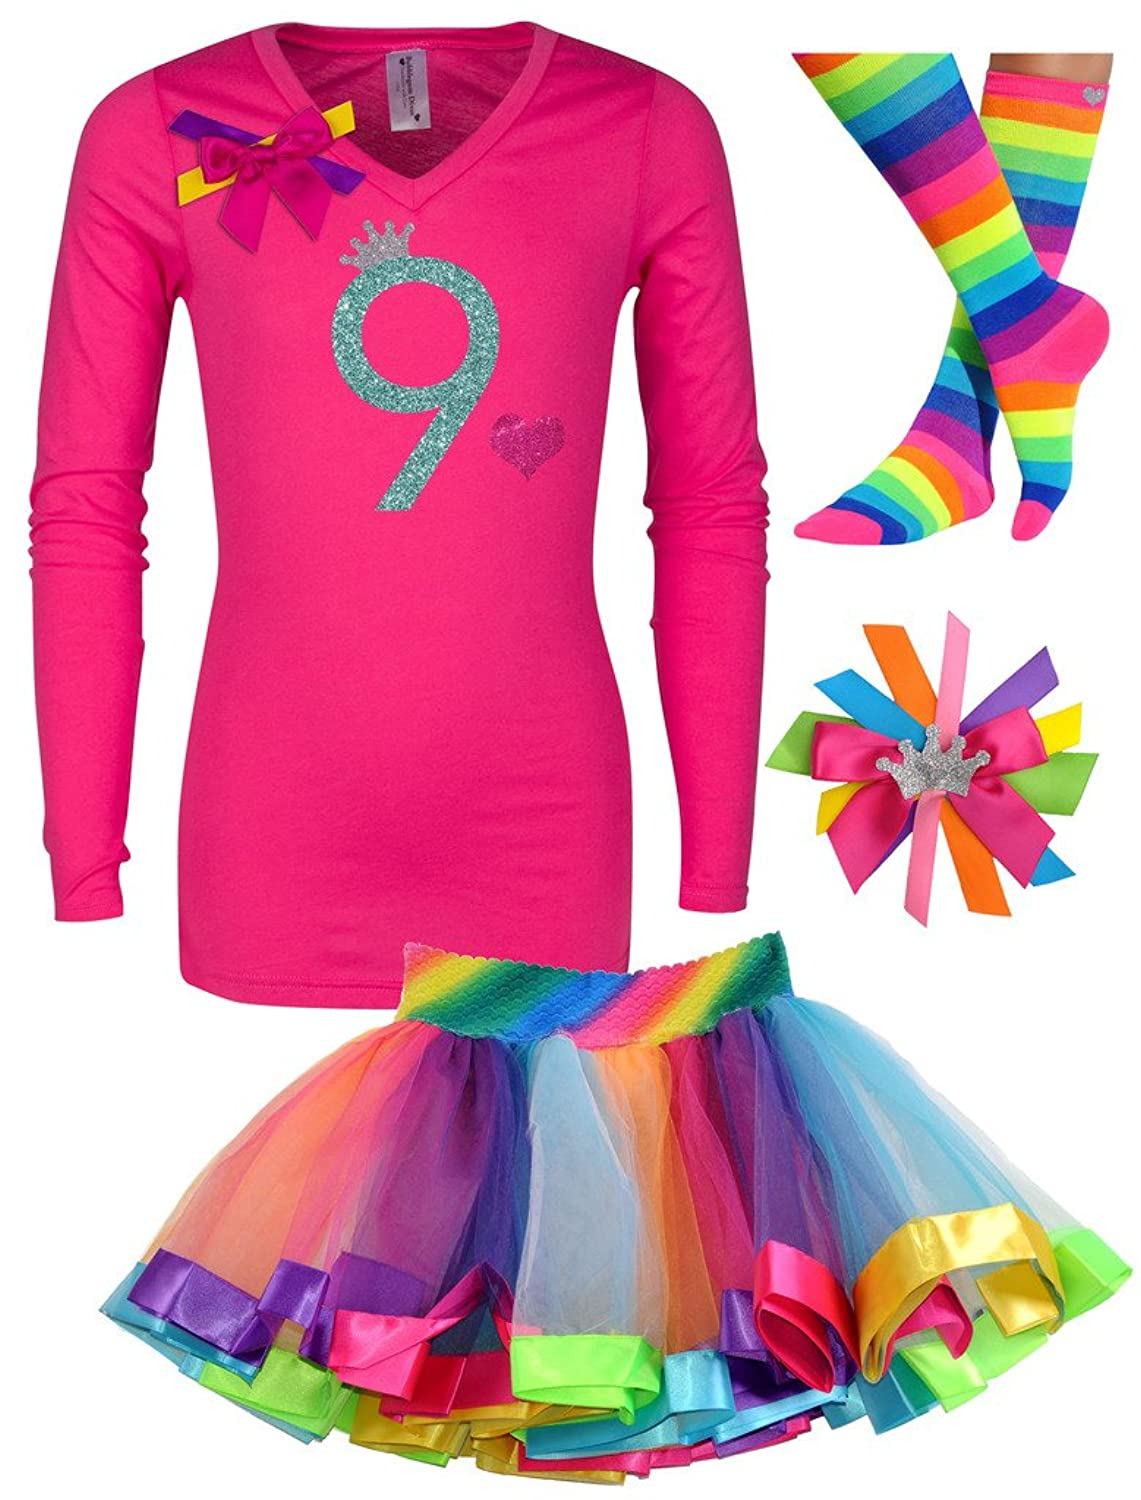 Bubblegum Divas Big Girls 9th Birthday Shirt Rainbow Tutu Socks Hair Bow 4pcs Outfit